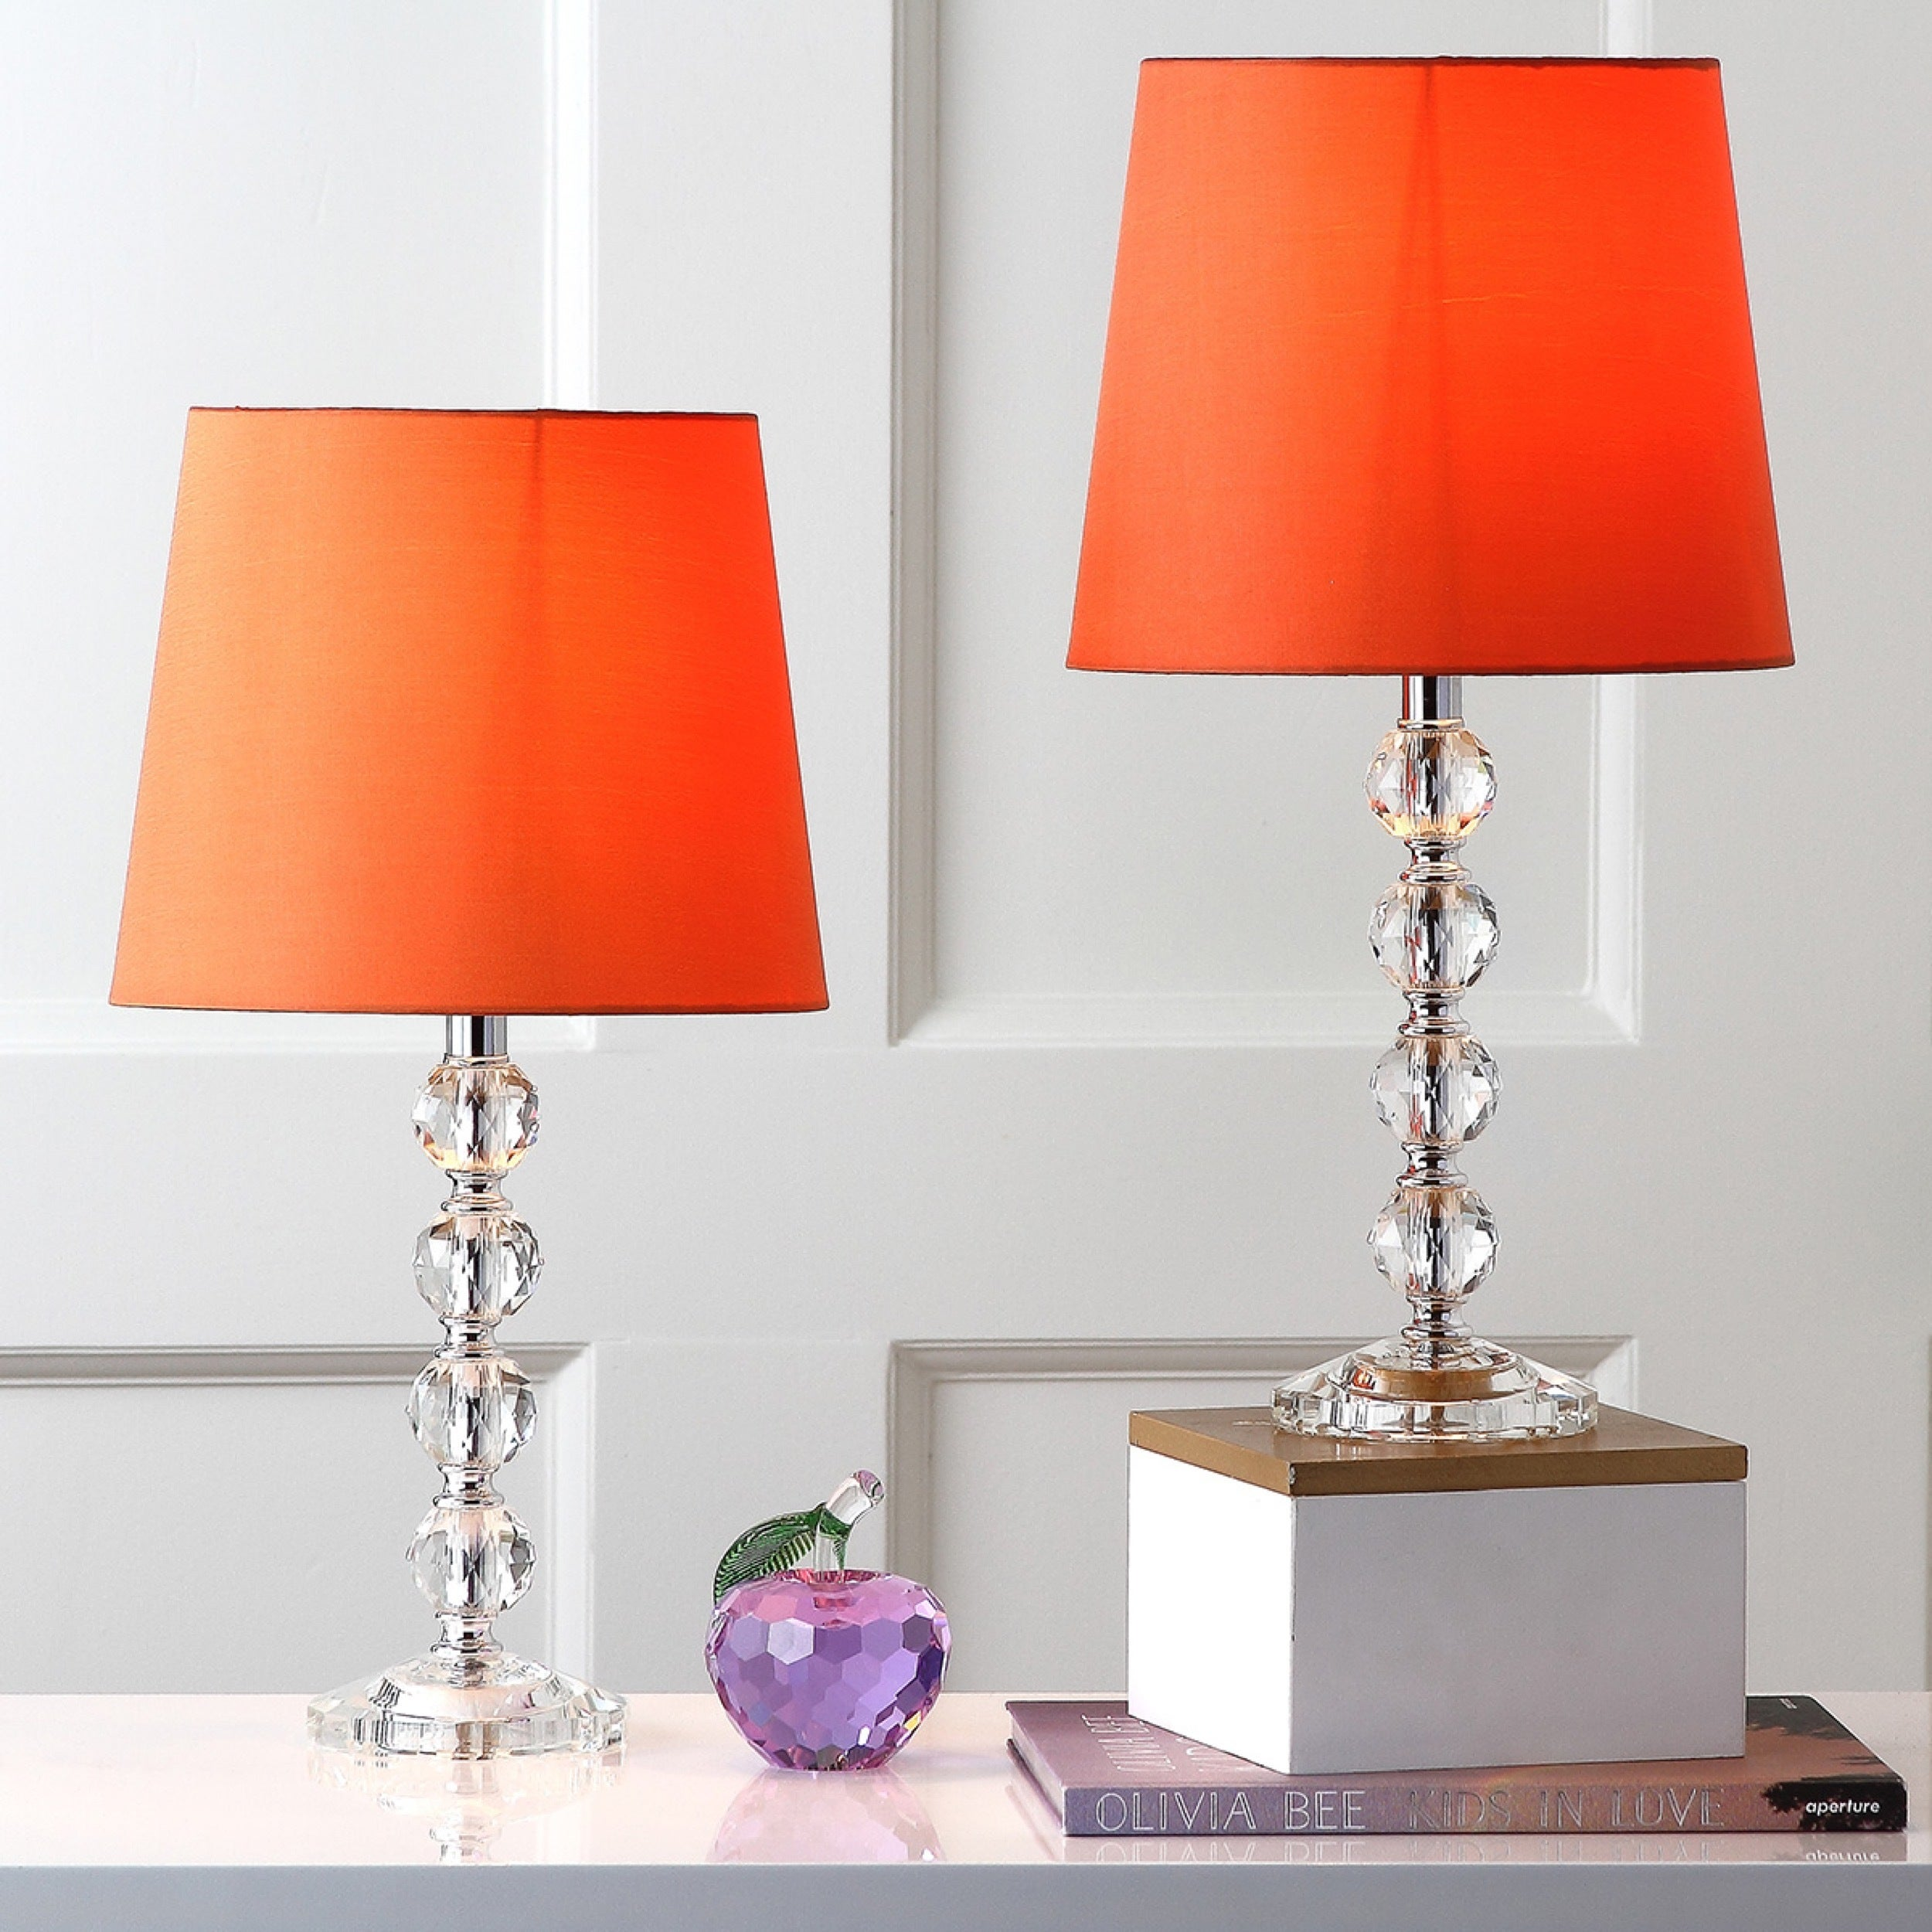 Safavieh lighting 16 inch nola orange shade stacked crystal ball safavieh lighting 16 inch nola orange shade stacked crystal ball table lamp set of 2 free shipping today overstock 15662230 mozeypictures Choice Image